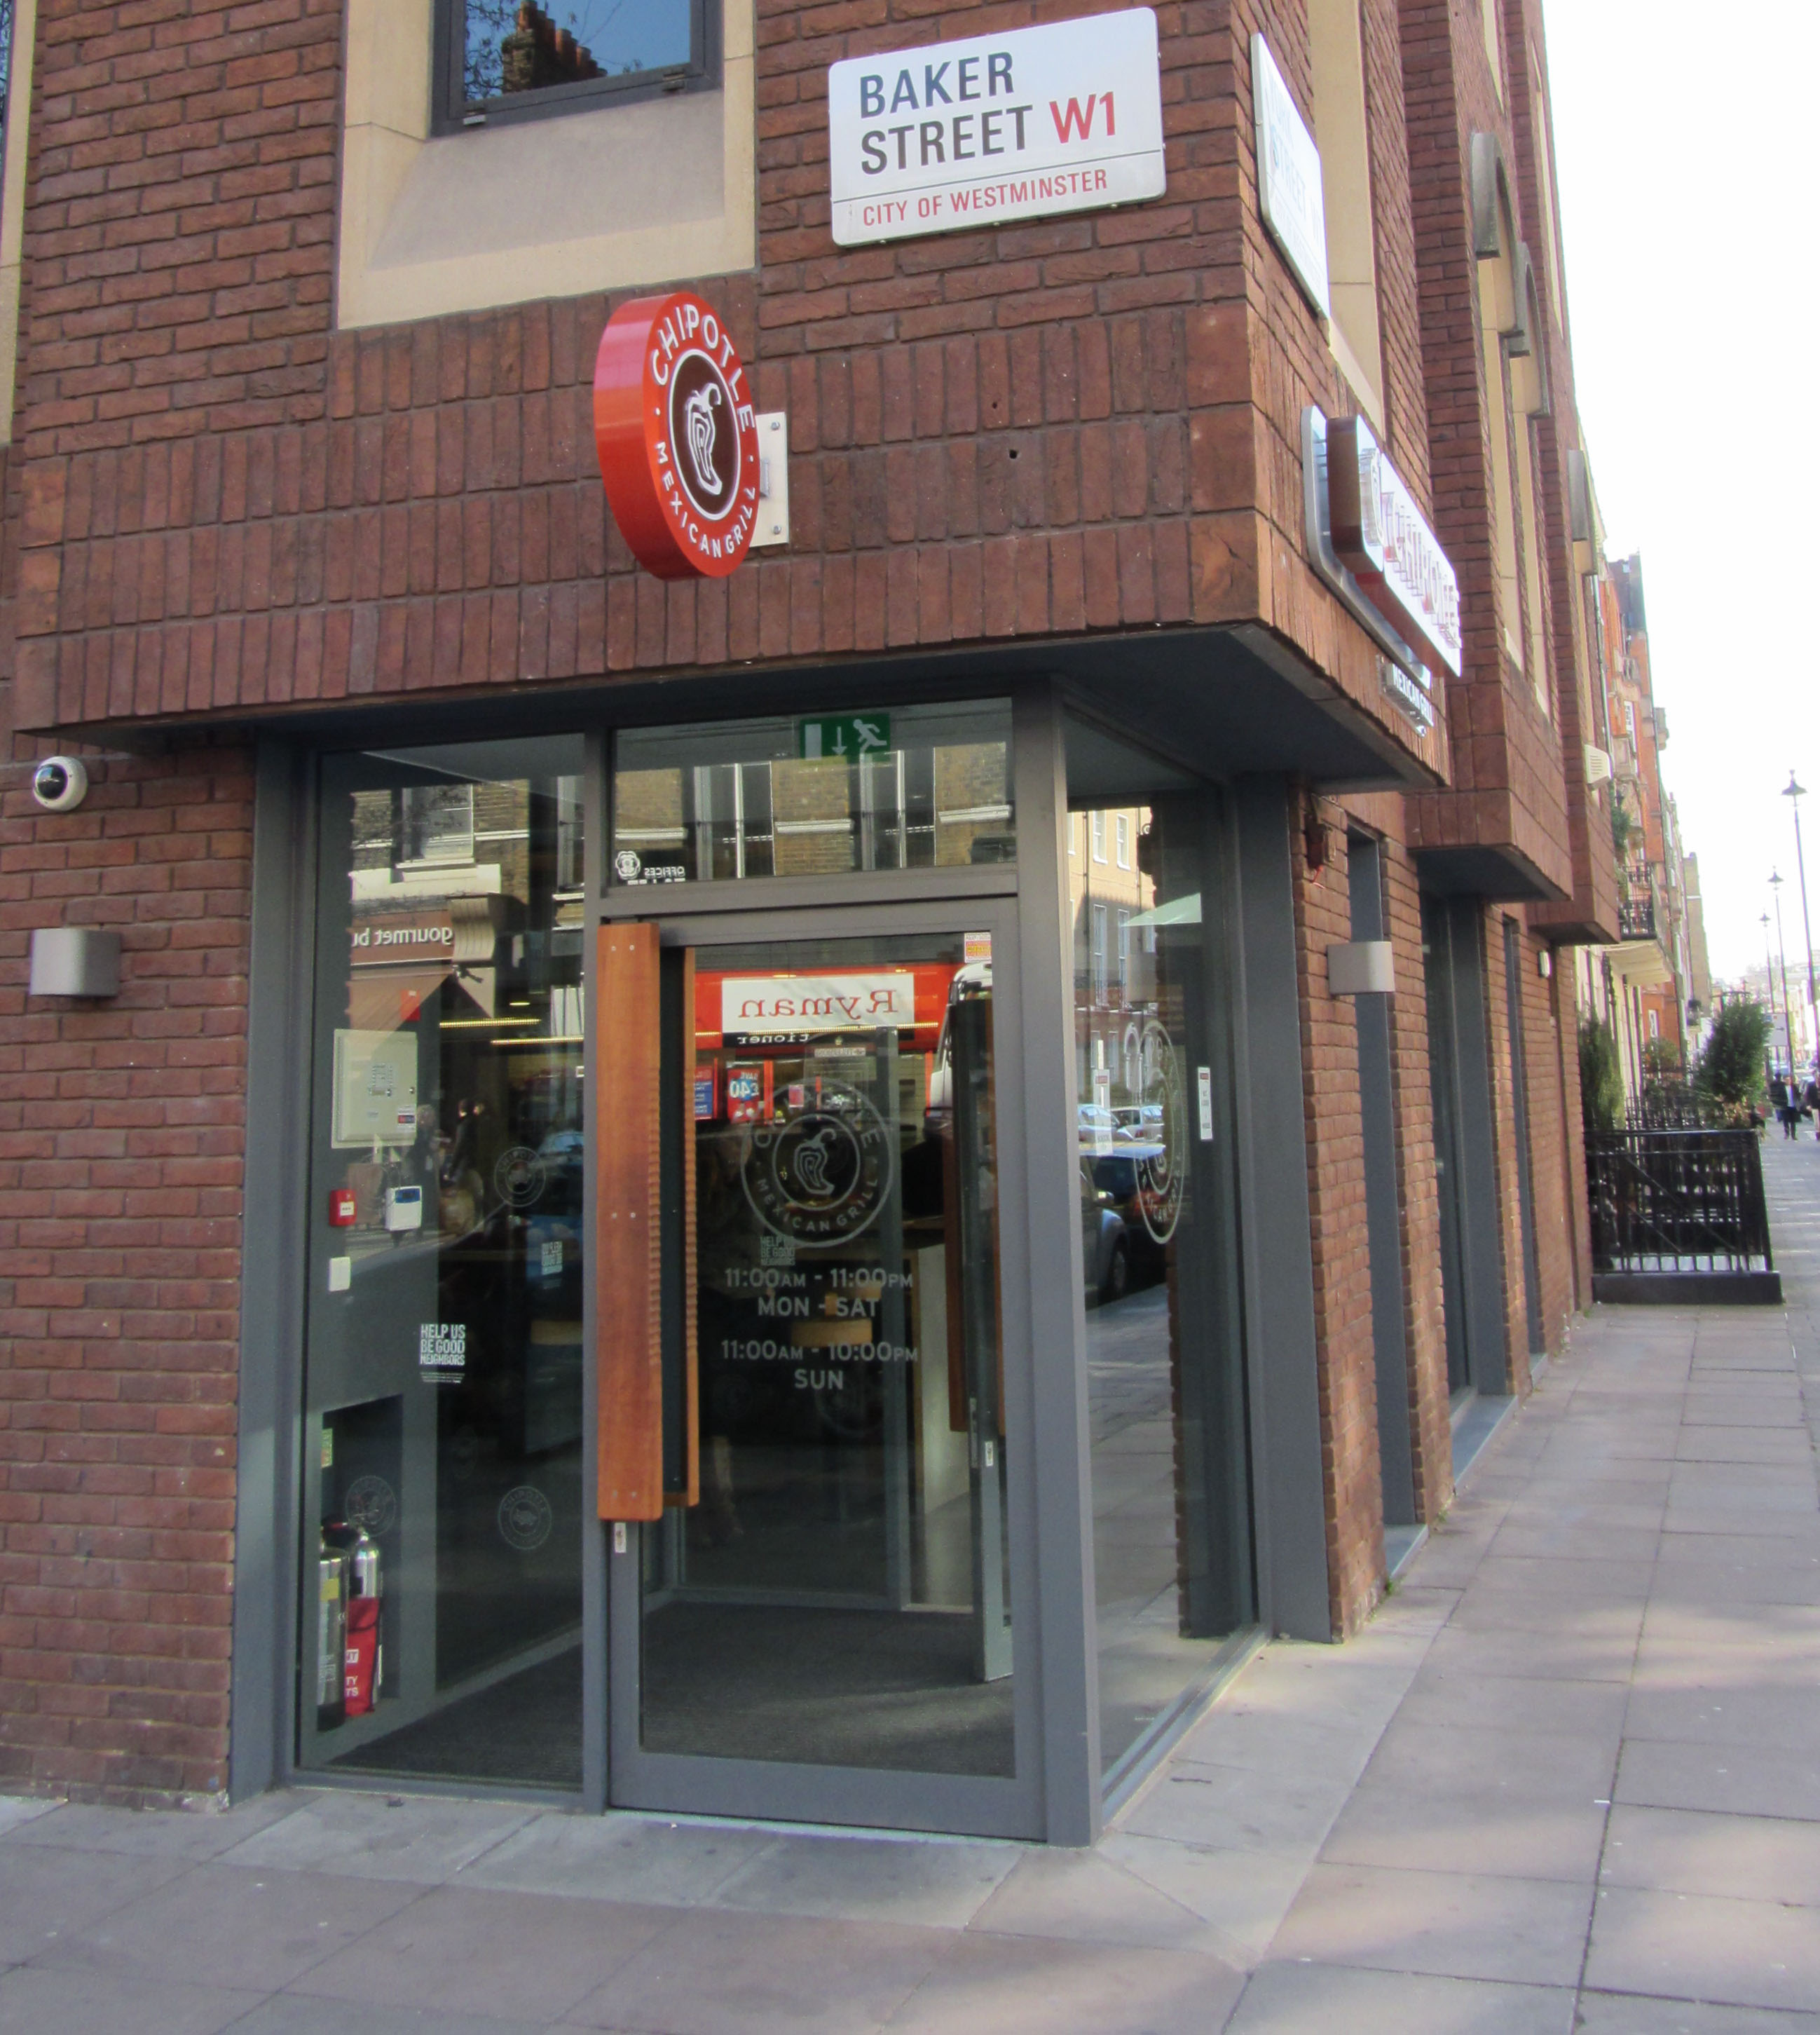 The second Chipotle Mexican Grill location in London, located on Baker Street